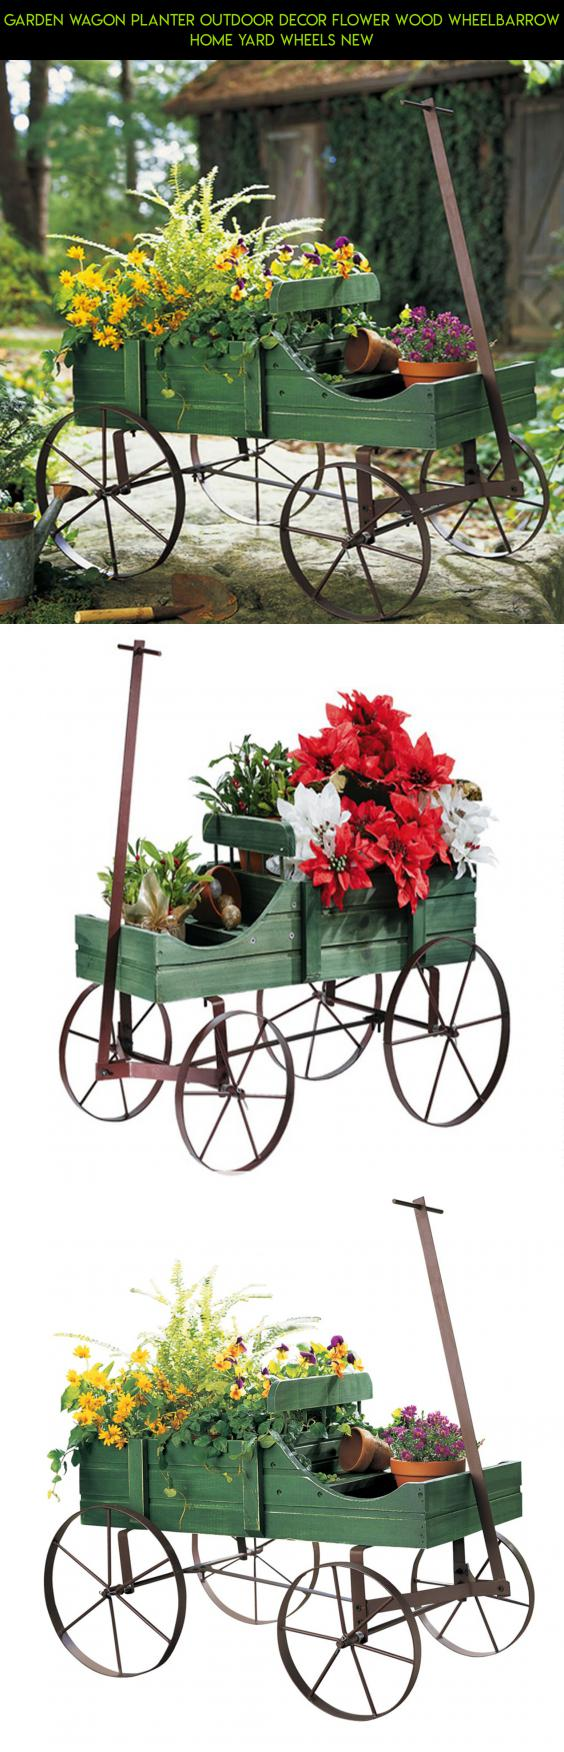 Garden Wagon Planter Outdoor Decor Flower Wood Wheelbarrow Home Yard Wheels  New #camera #kit